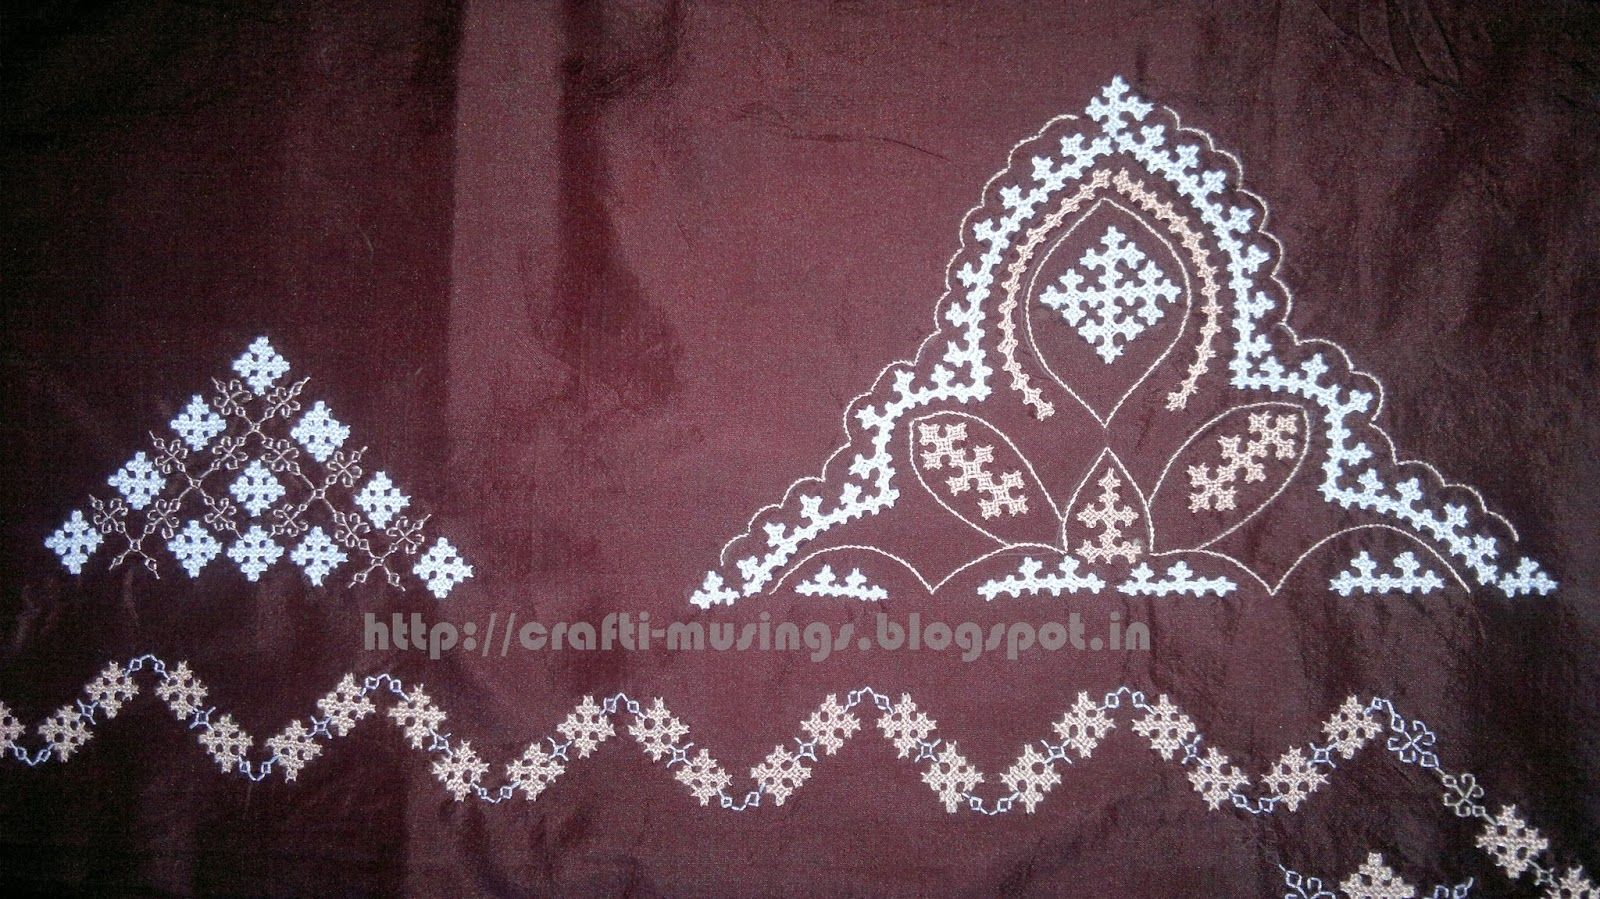 Silk saree blouse designs without embroidery what is kutch embroidery  google search  kutch work  pinterest